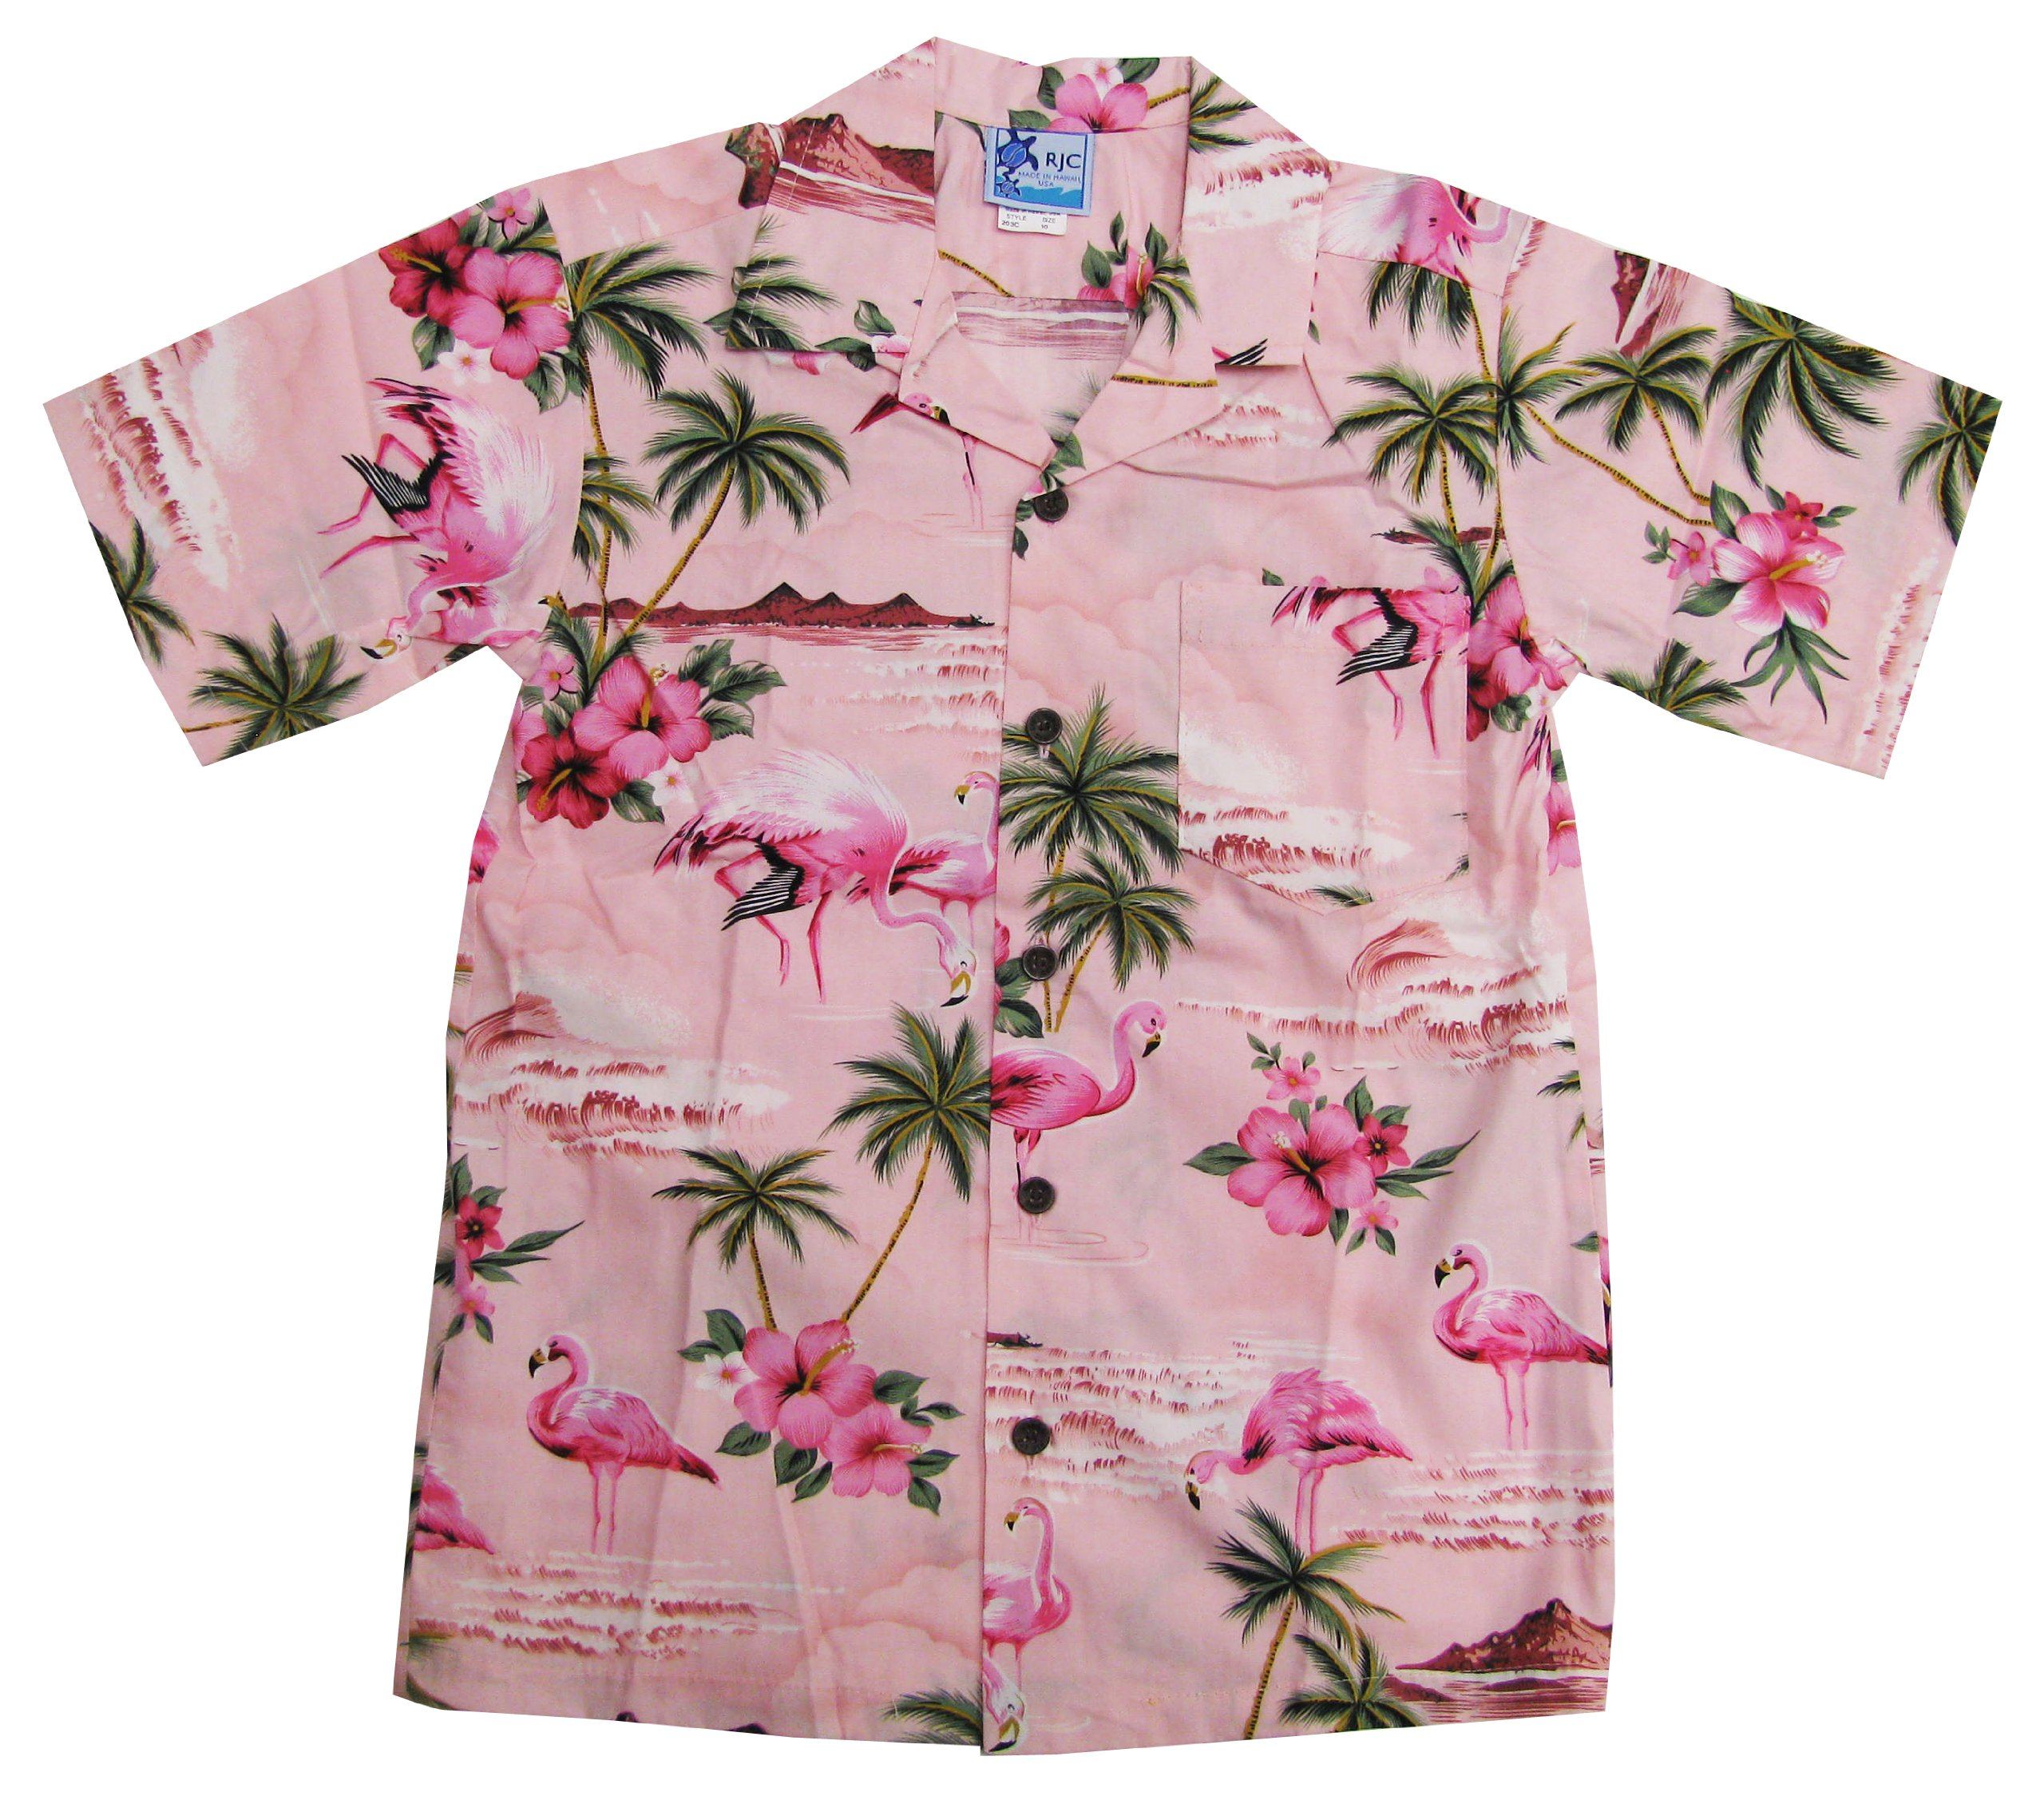 RJC Boys Pink Flamingo Hibiscus Shirt in Pink - 12